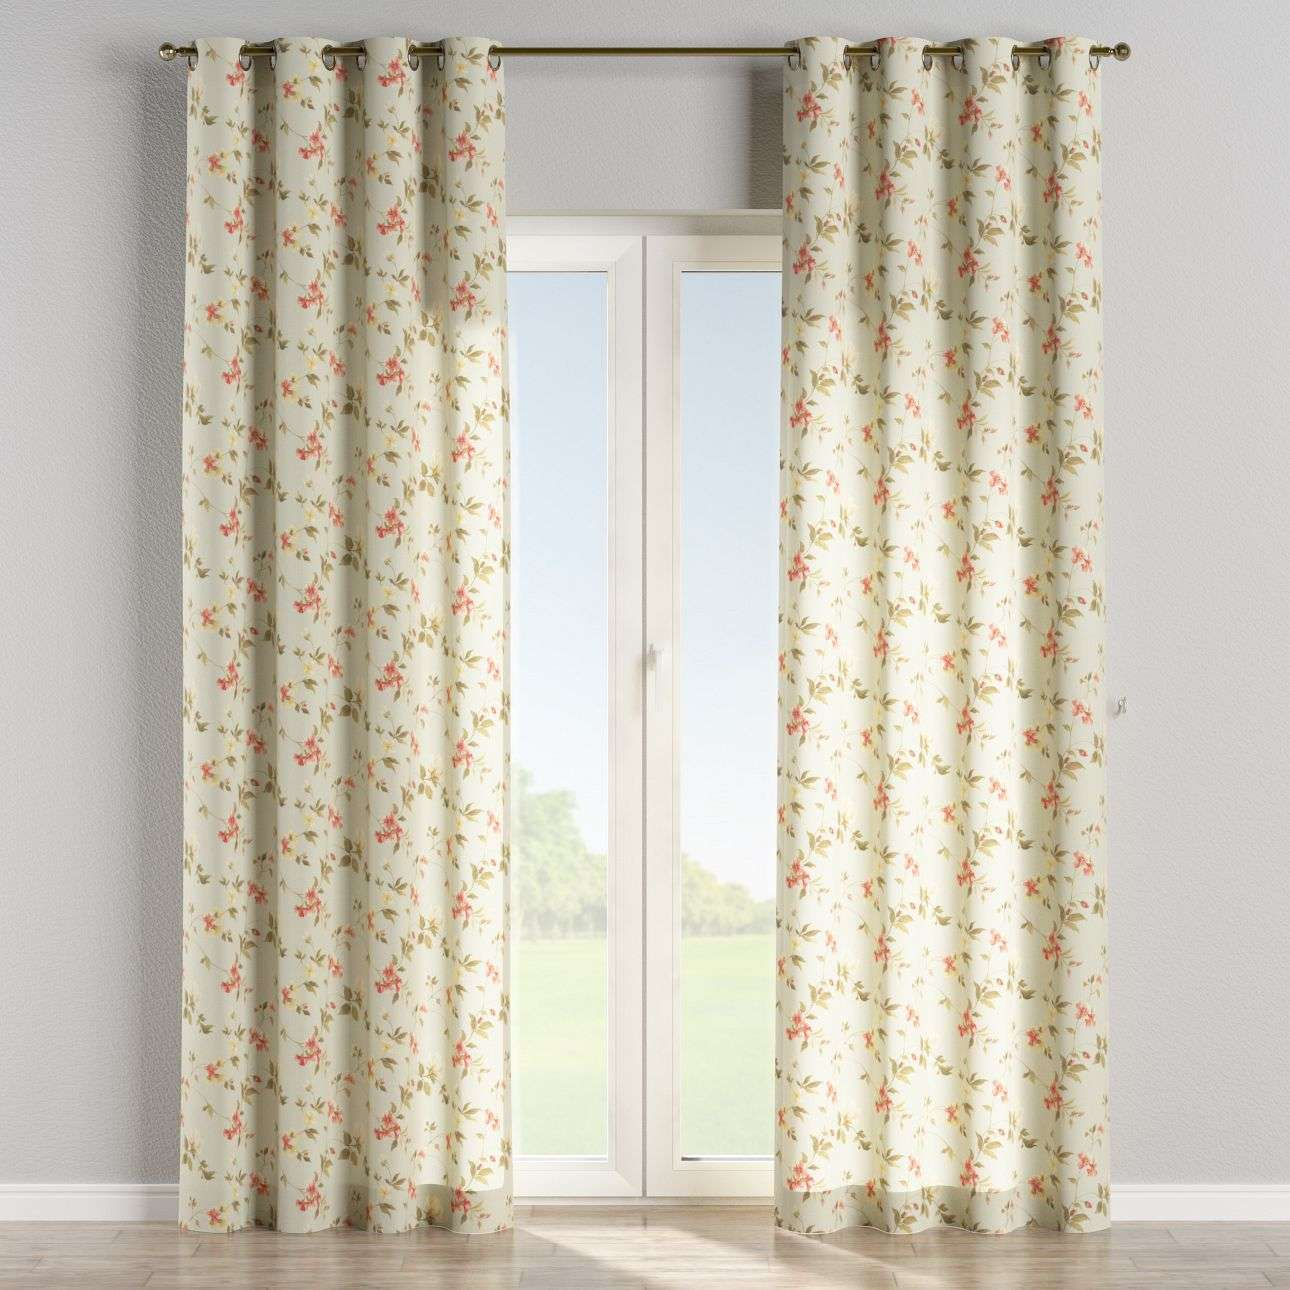 Eyelet curtains 130 x 260 cm (51 x 102 inch) in collection Londres, fabric: 124-65